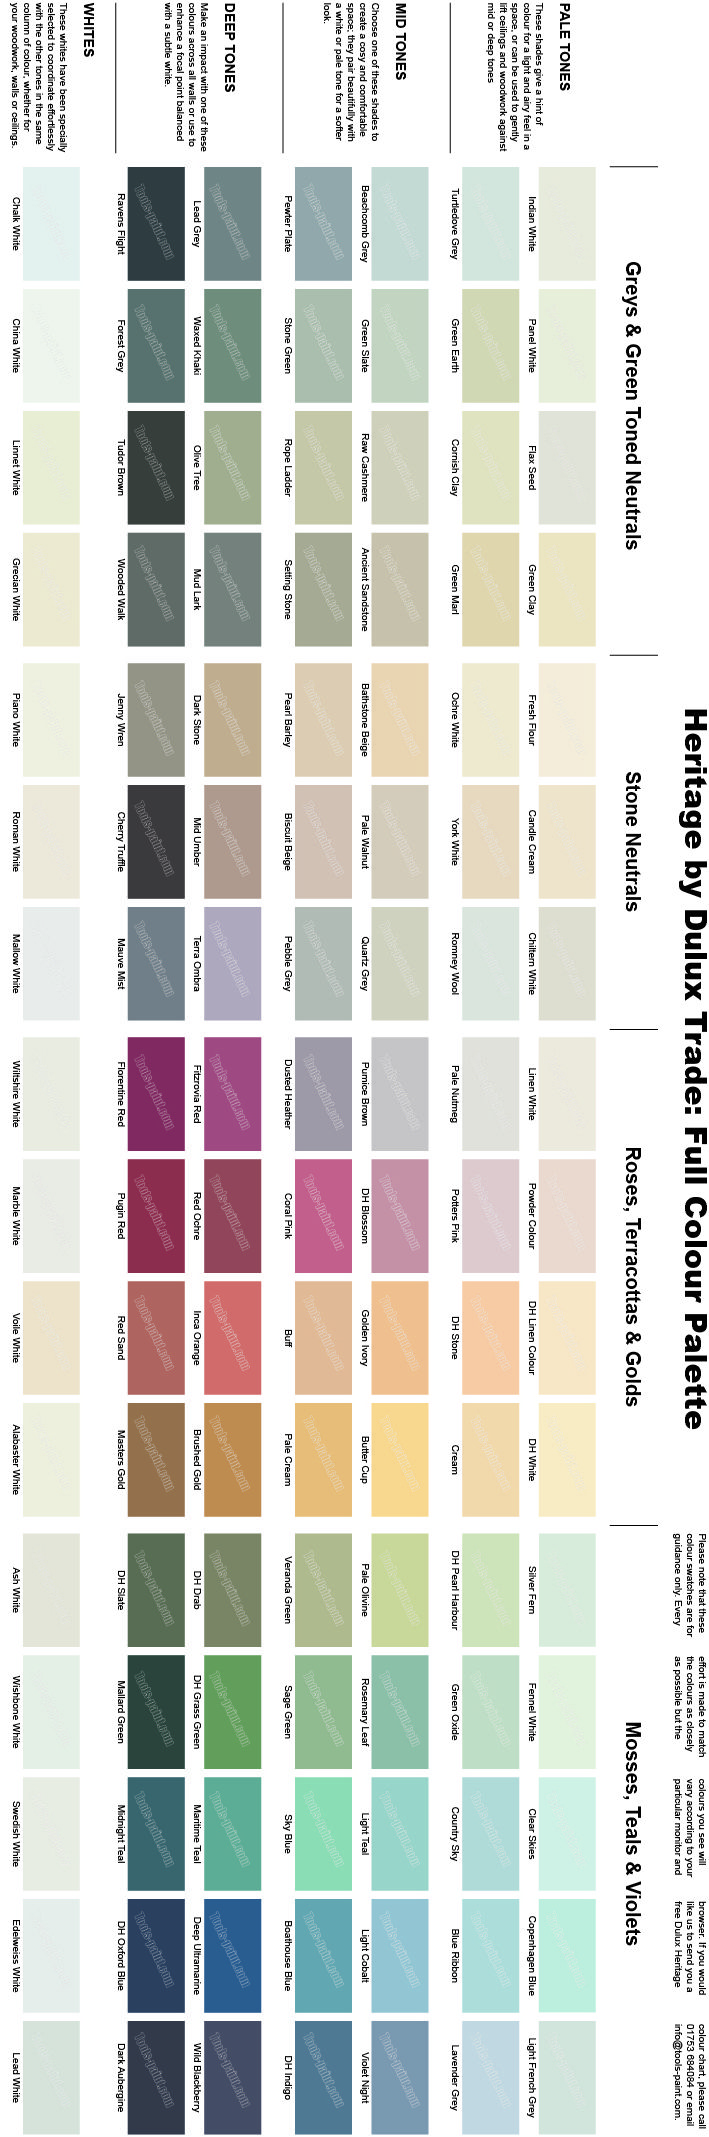 Best 25 Dulux Paint Colours Ideas On Pinterest Dulux Paint Colours Lounge Dulux Paint